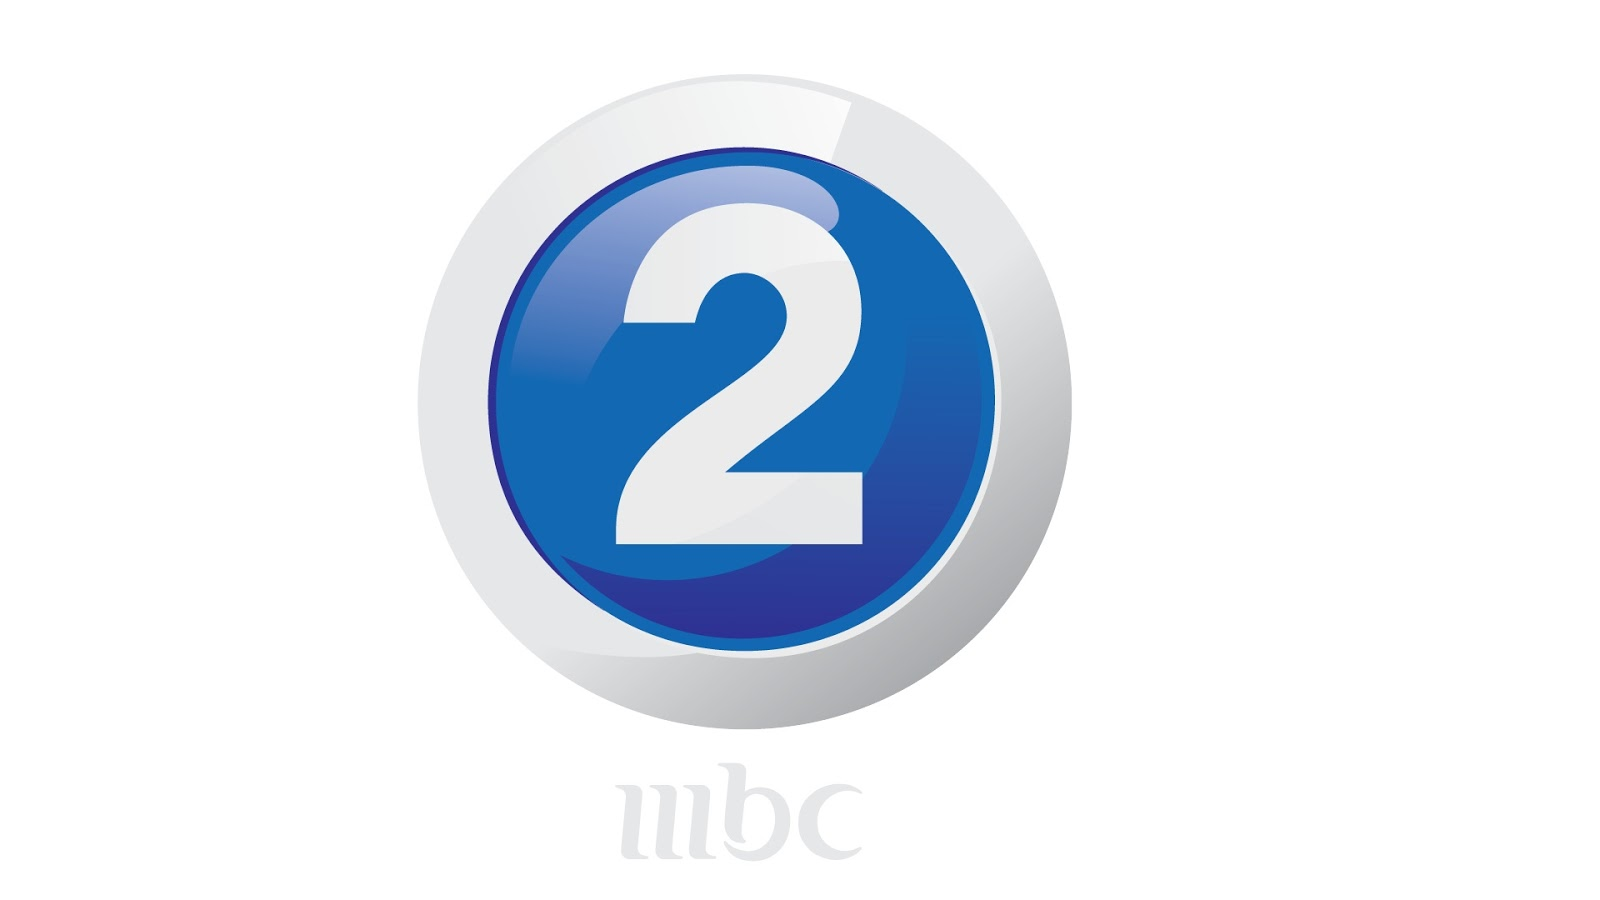 MBC 1/2/3/4/MAX/Action - New Frequencies On Nilesat / Badr 2019